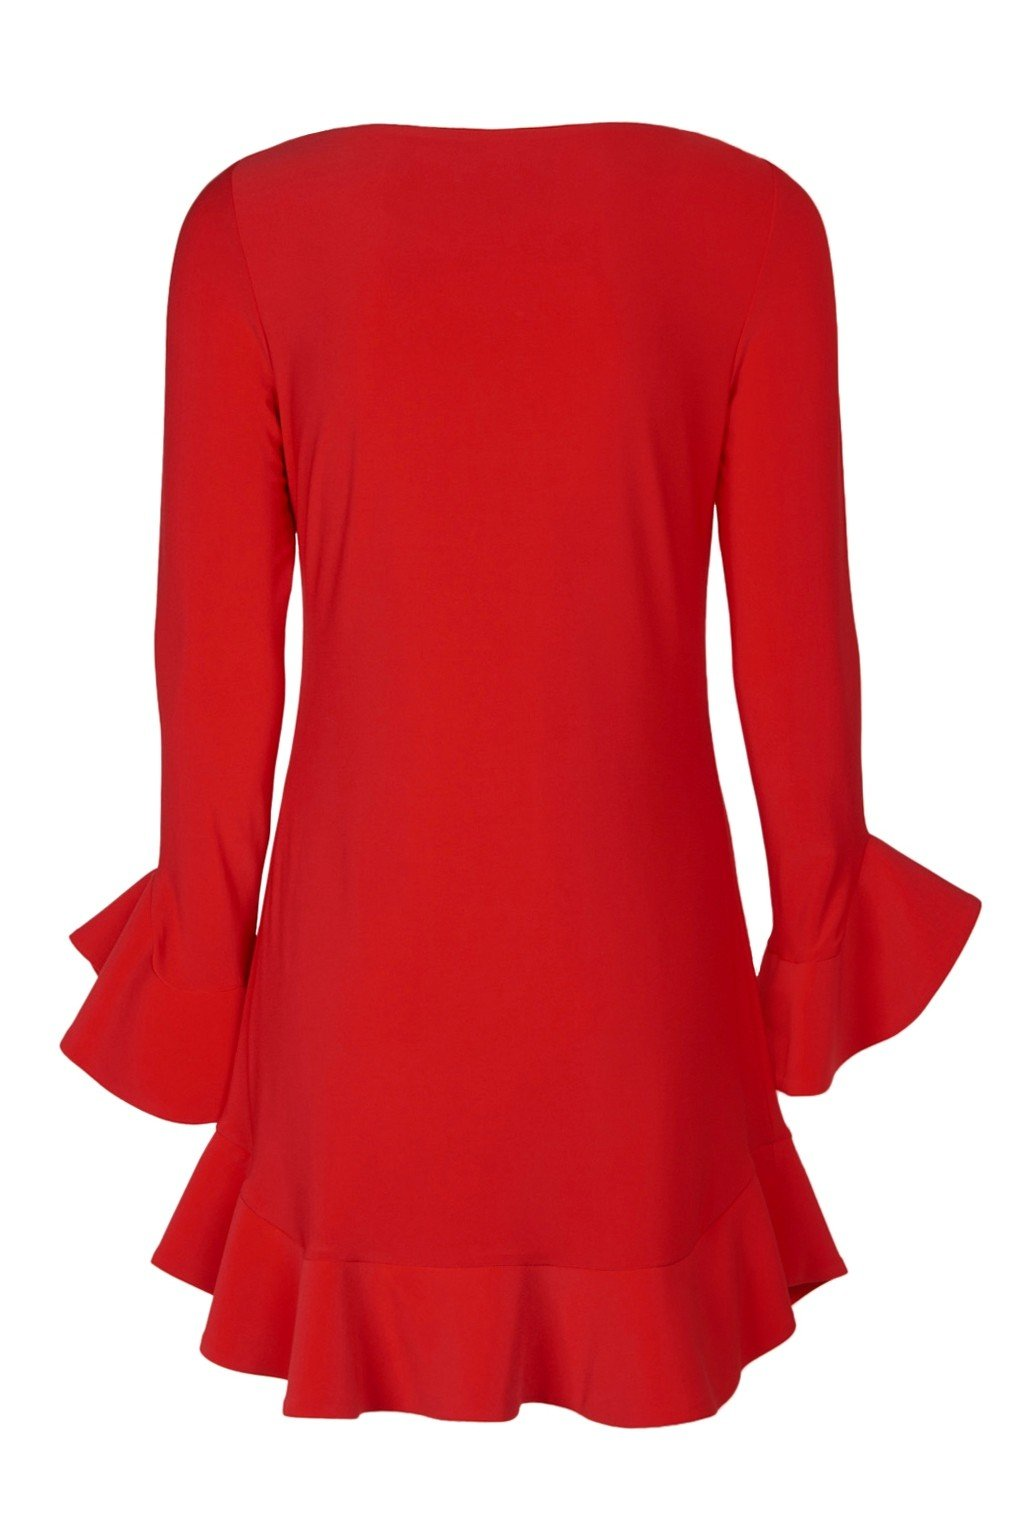 Laundry - 97F34310 Flounce Cuff Long Sleeves Solid Jersey Shift Dress In Red